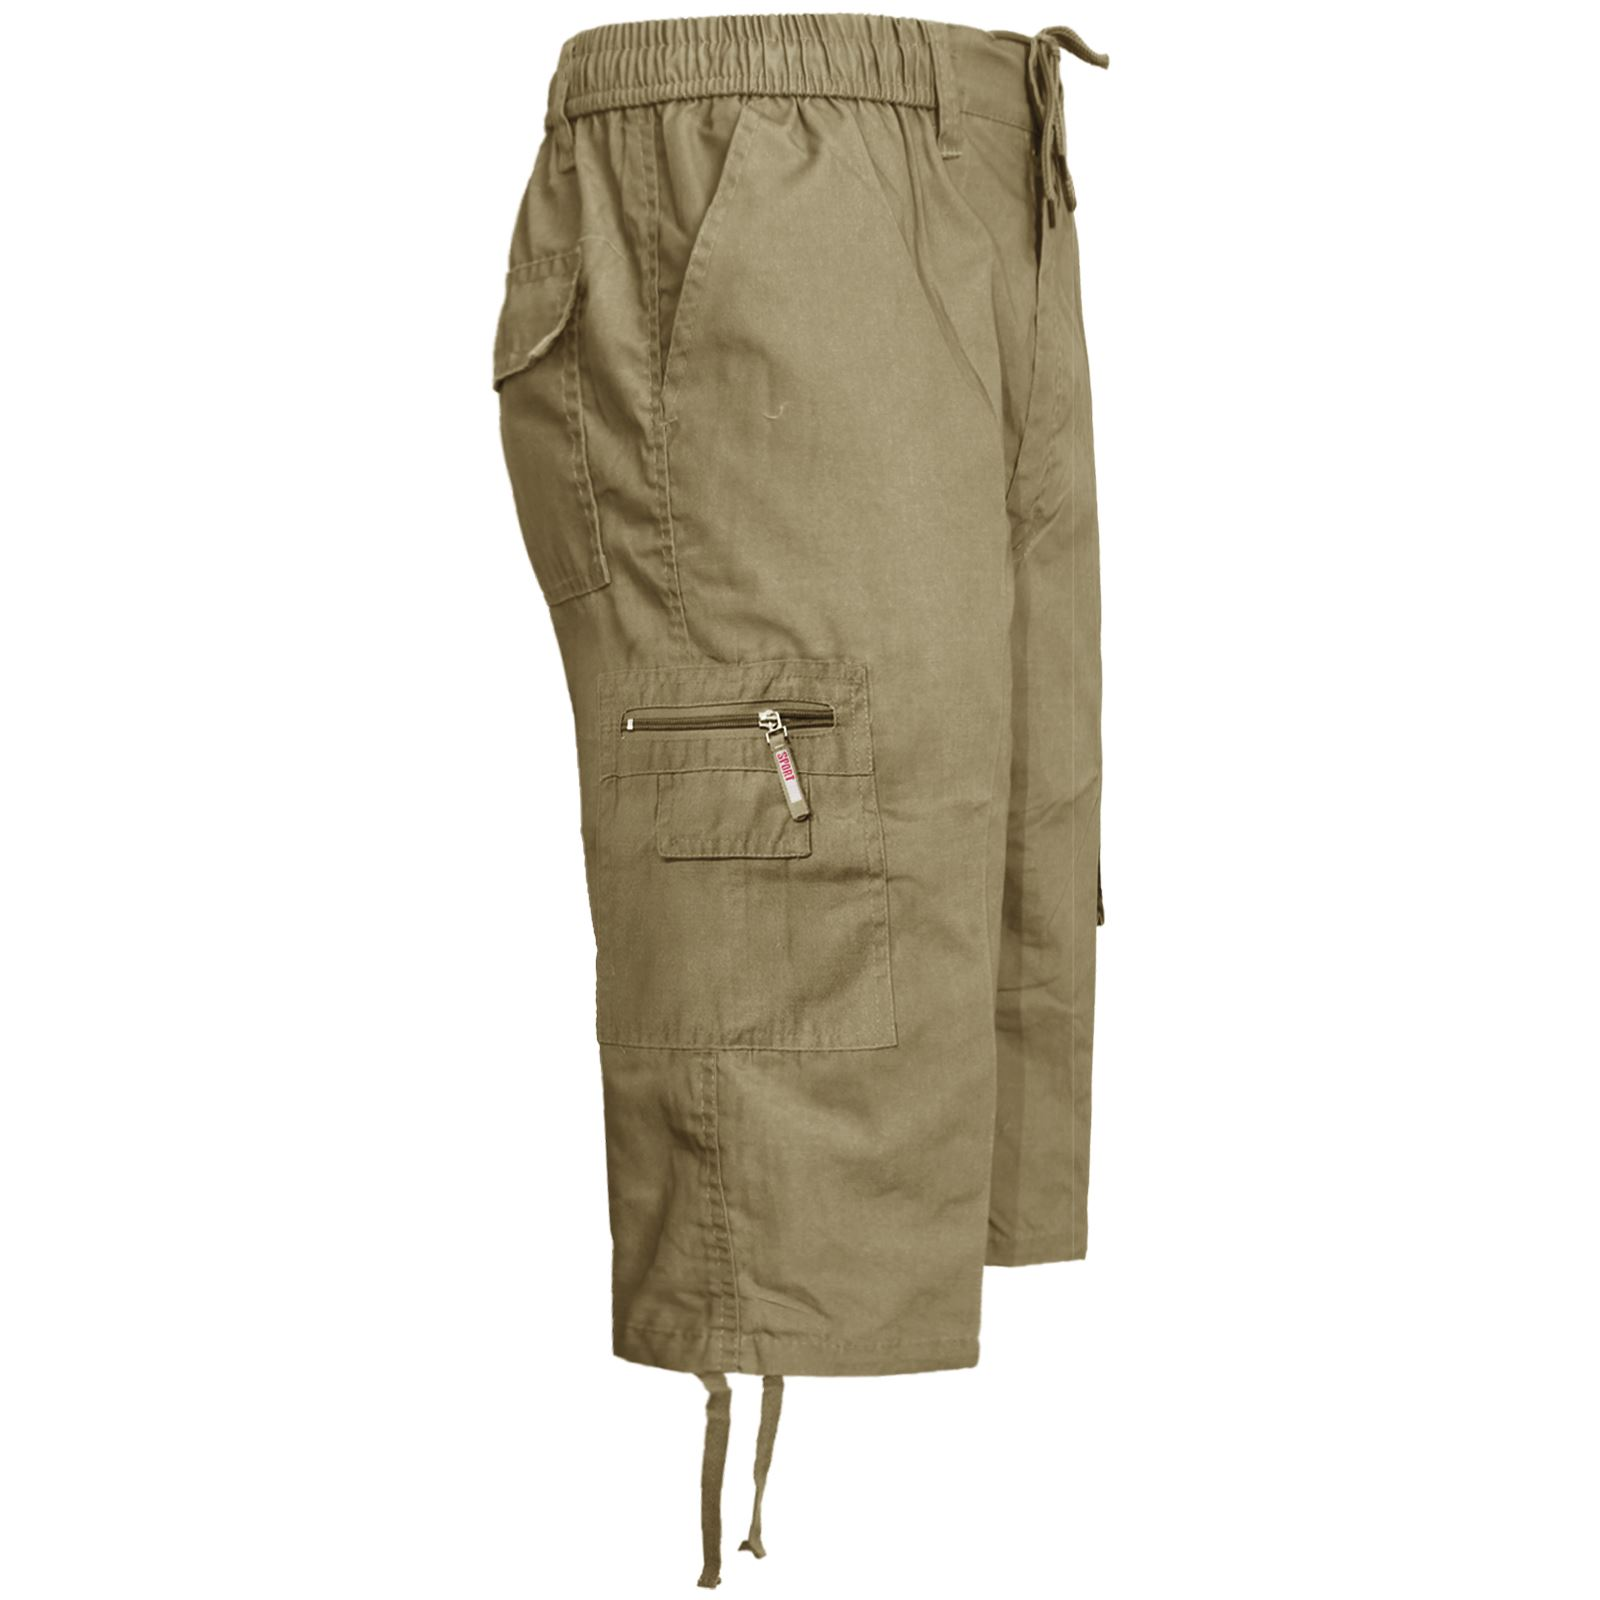 MENS-ELASTICATED-KNEE-LENGTH-OR-3-4-SHORTS-CARGO-COMBAT-MULTI-POCKET-SUMMER-PANT thumbnail 21